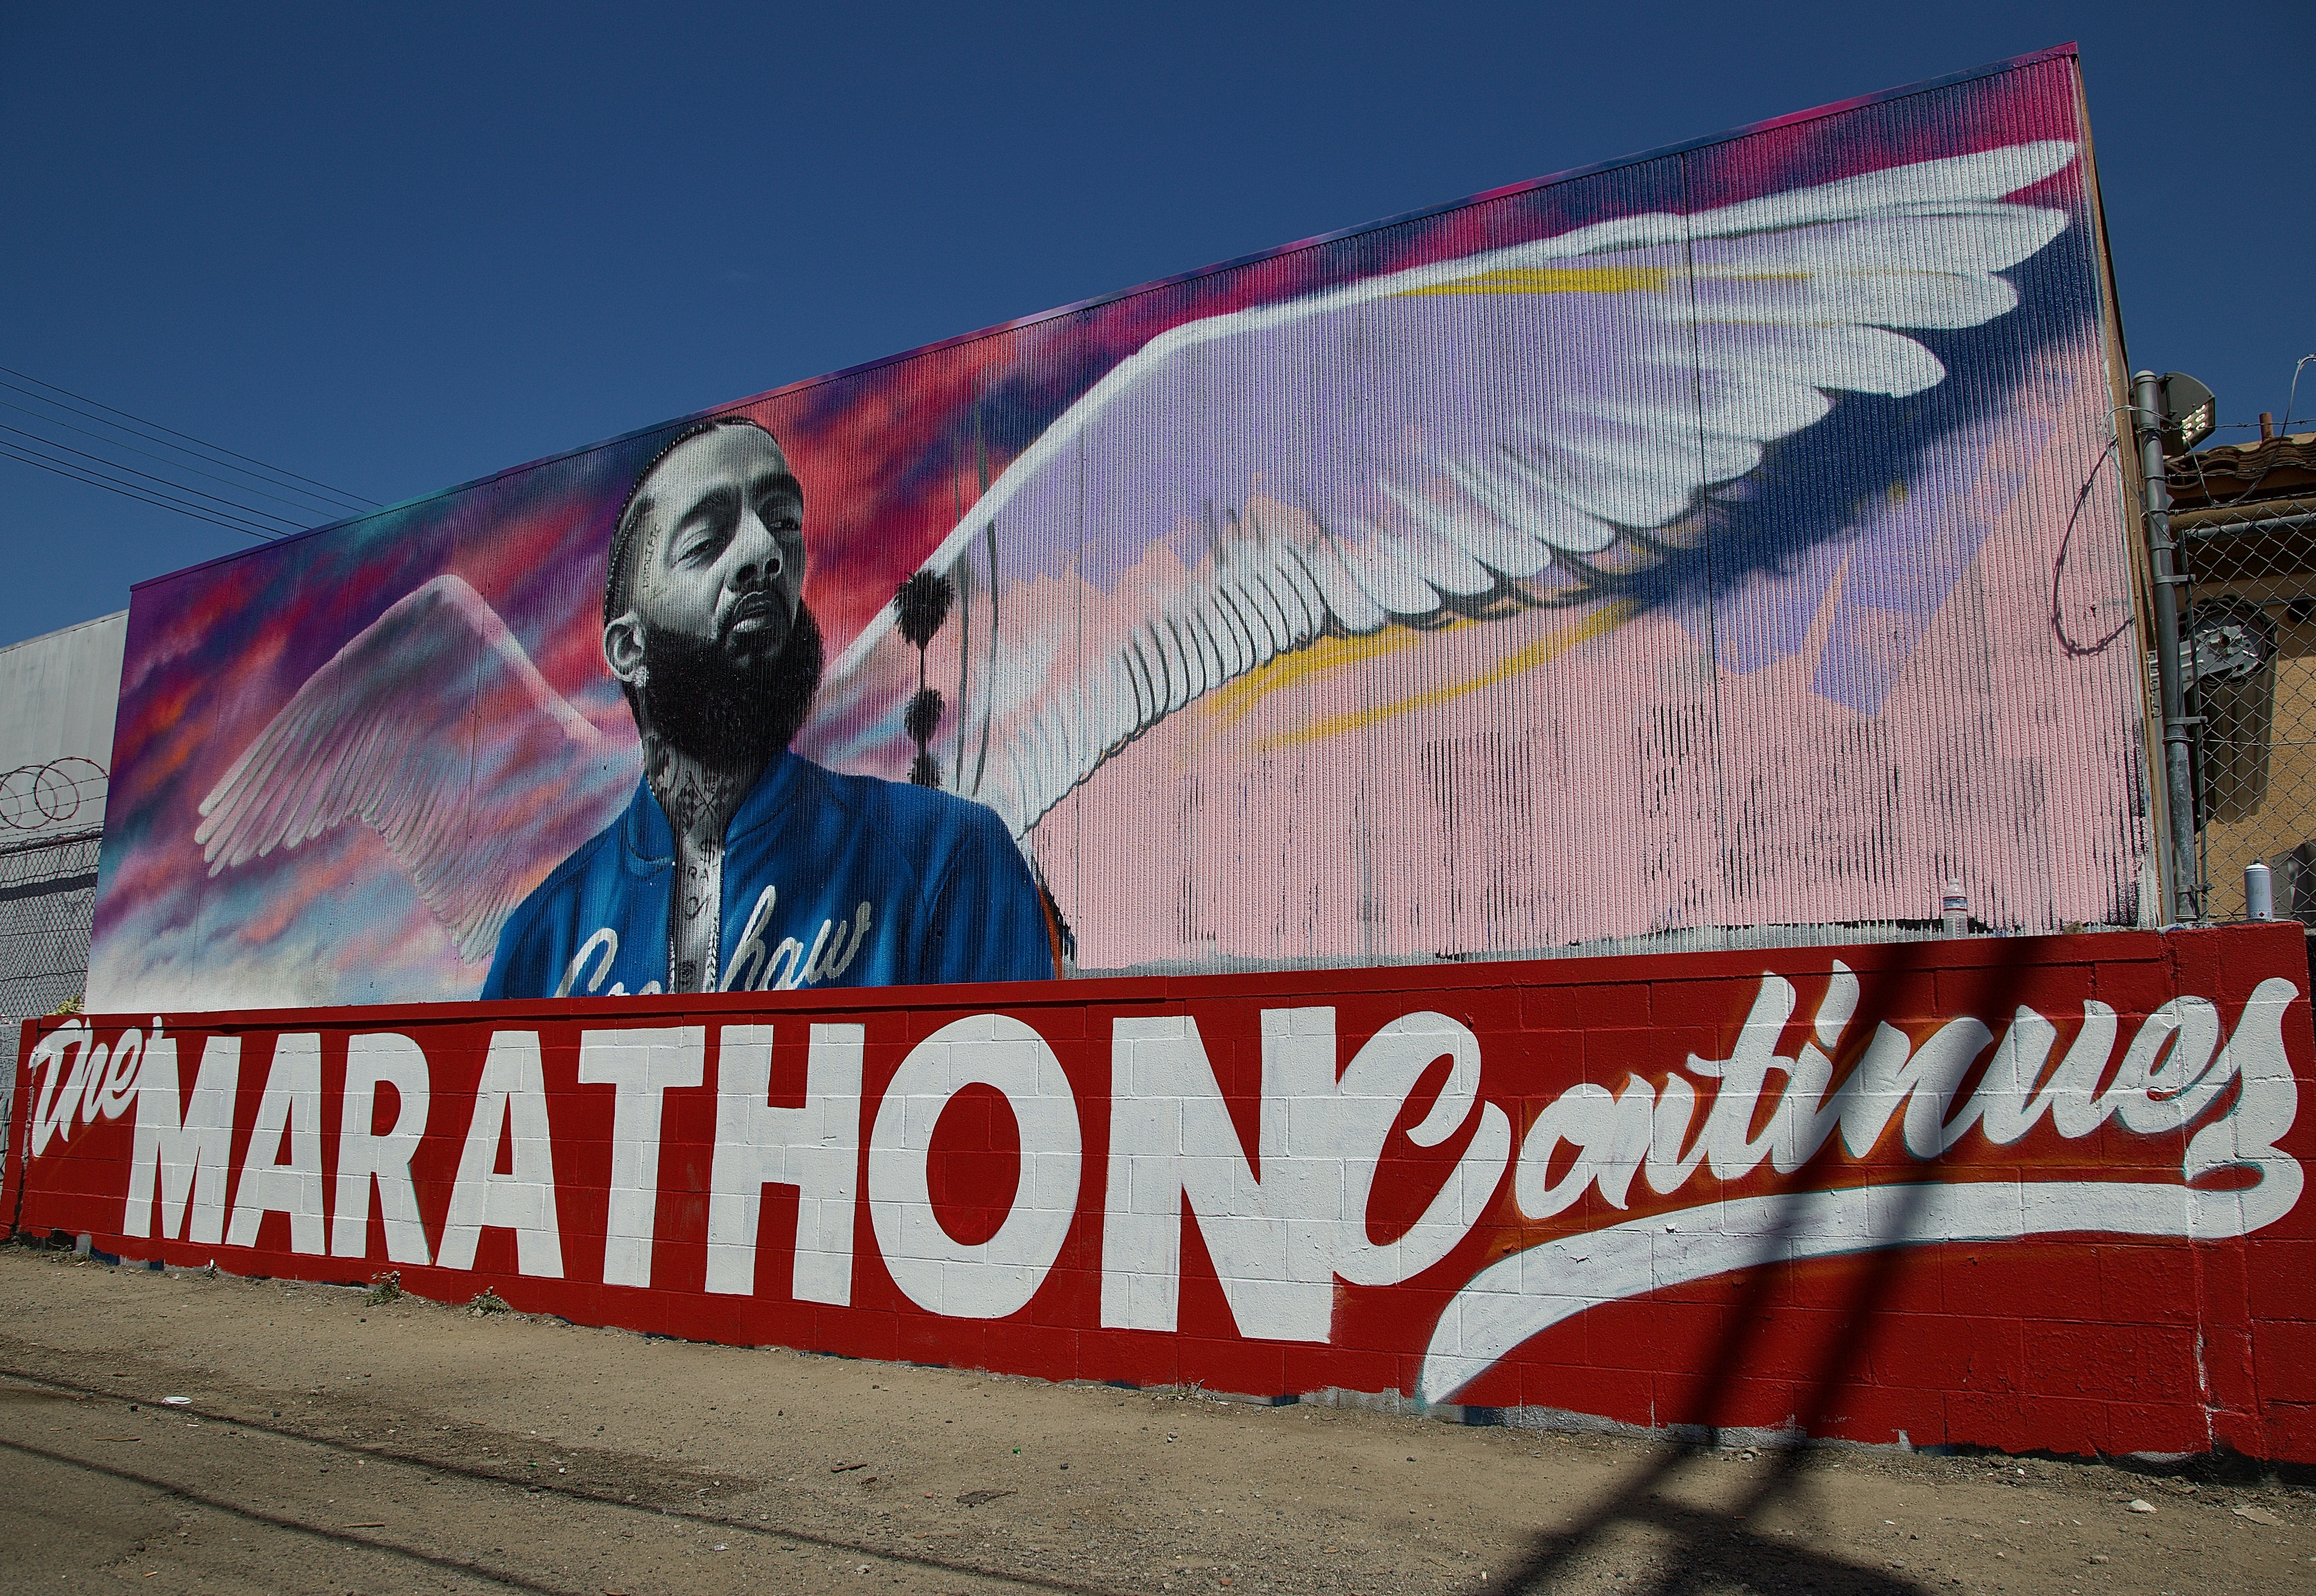 """A portrait of Nipsey Hussle by artist Danny Mateo graces the alley adjacent to the strip mall where Hussle was killed at Crenshaw and Slauson on March 31. """"The Marathon Continues"""" references both his approach to building his career from the ground up and his understanding of what it took to bring the community along with him. Sahra Sulaiman/Streetsblog L.A."""